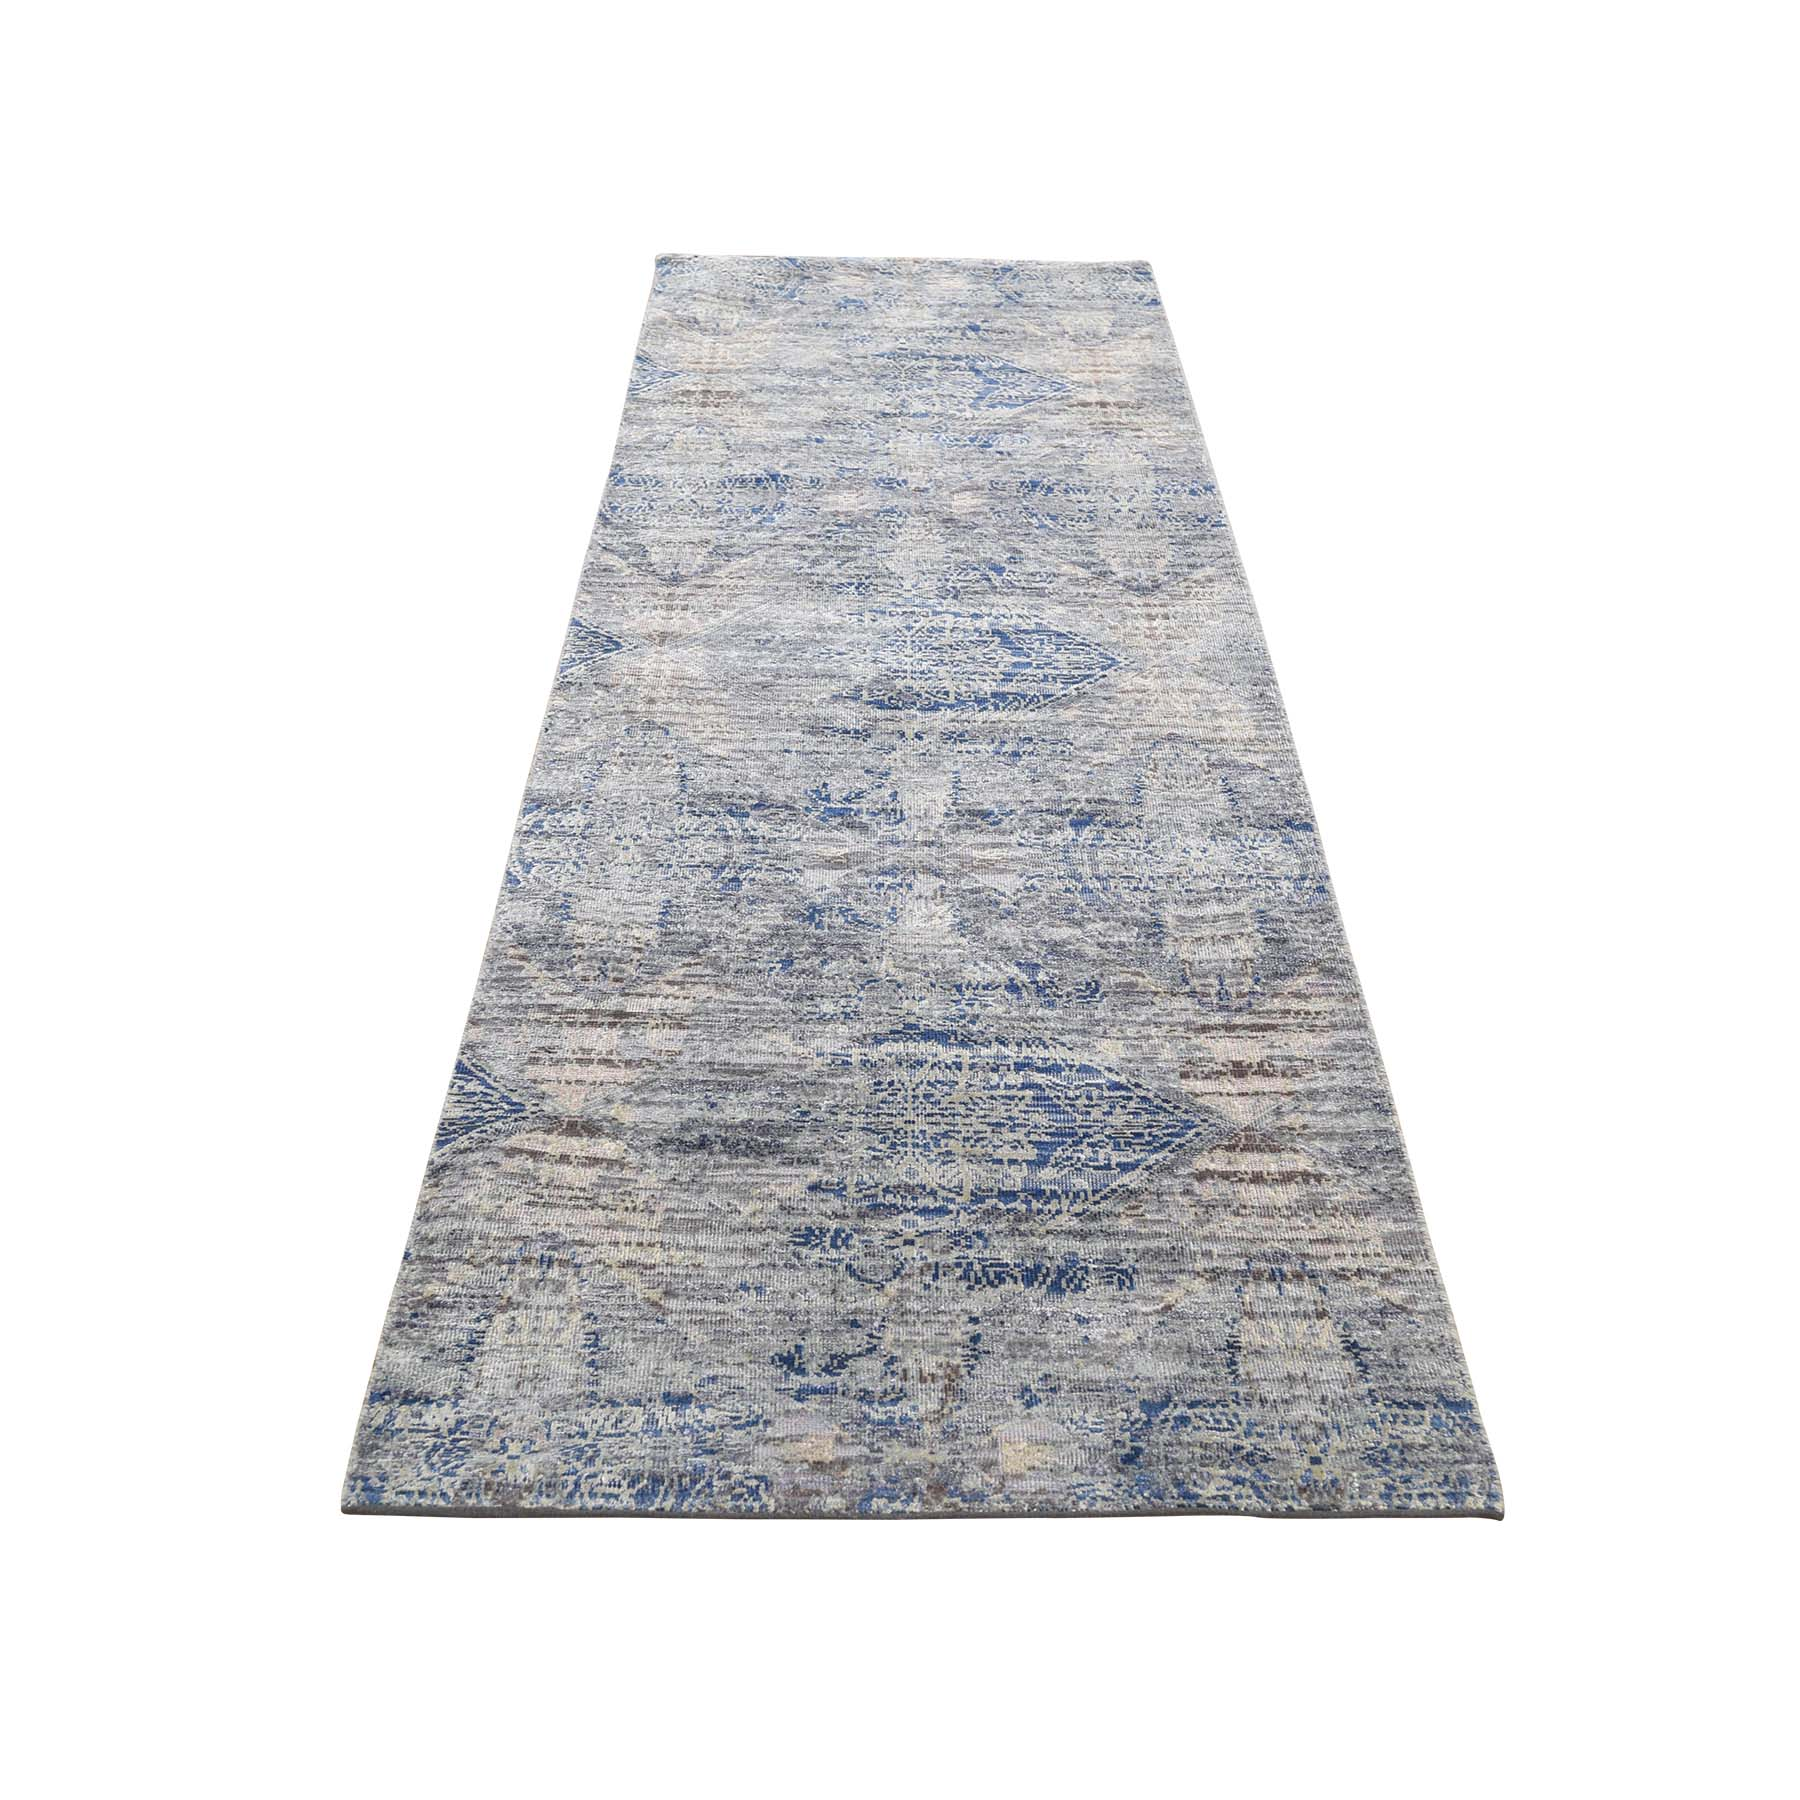 "2'5""x8'2"" Silk With Textured Wool Denim Blue Erased Rossette Design Runner Hand-Knotted Oriental Rug"